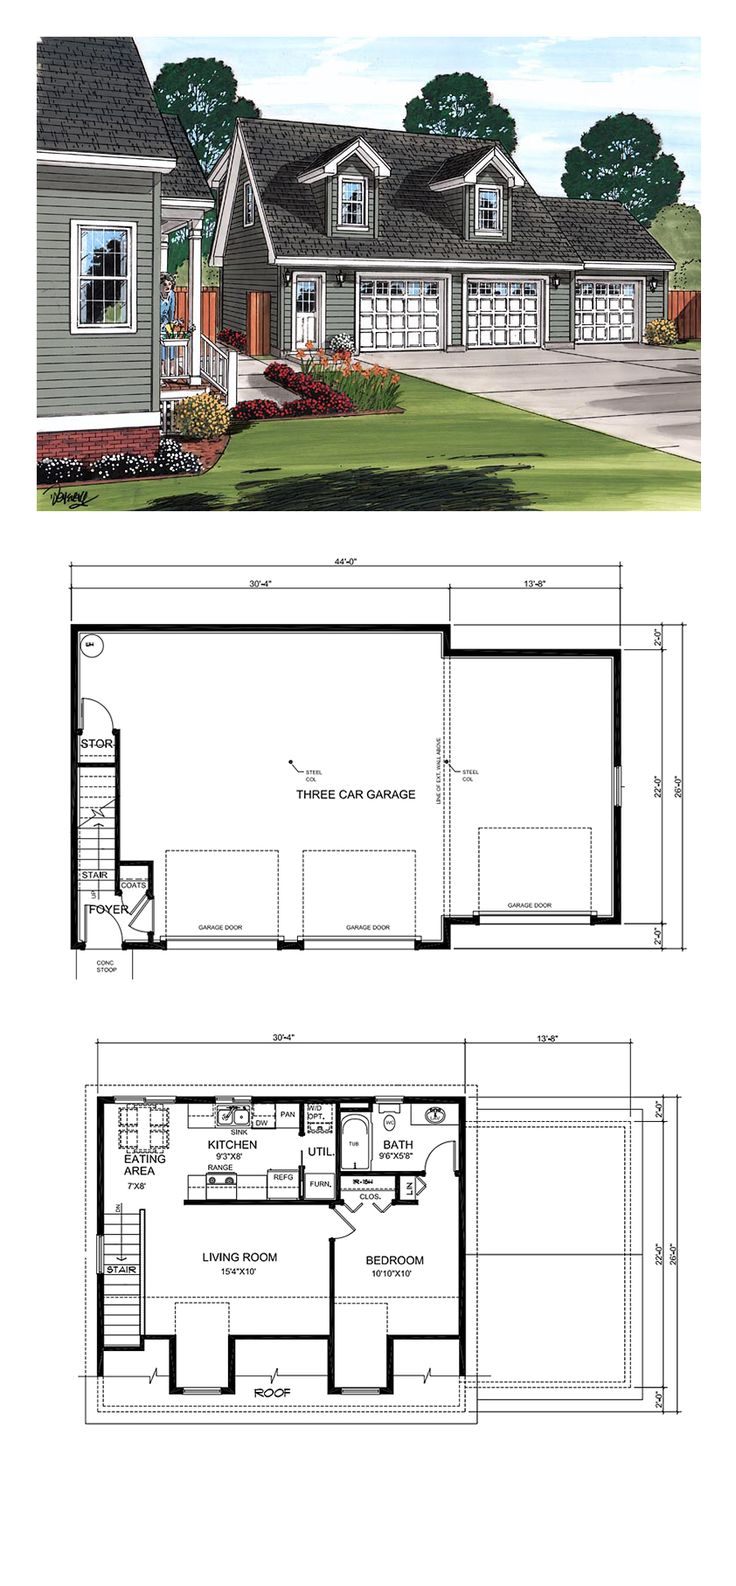 Garage Apartment Plan 30031 | Total Living Area: 687 sq. ft., 1 bedroom and 1 bathroom. #apartmentplan #carriagehouse